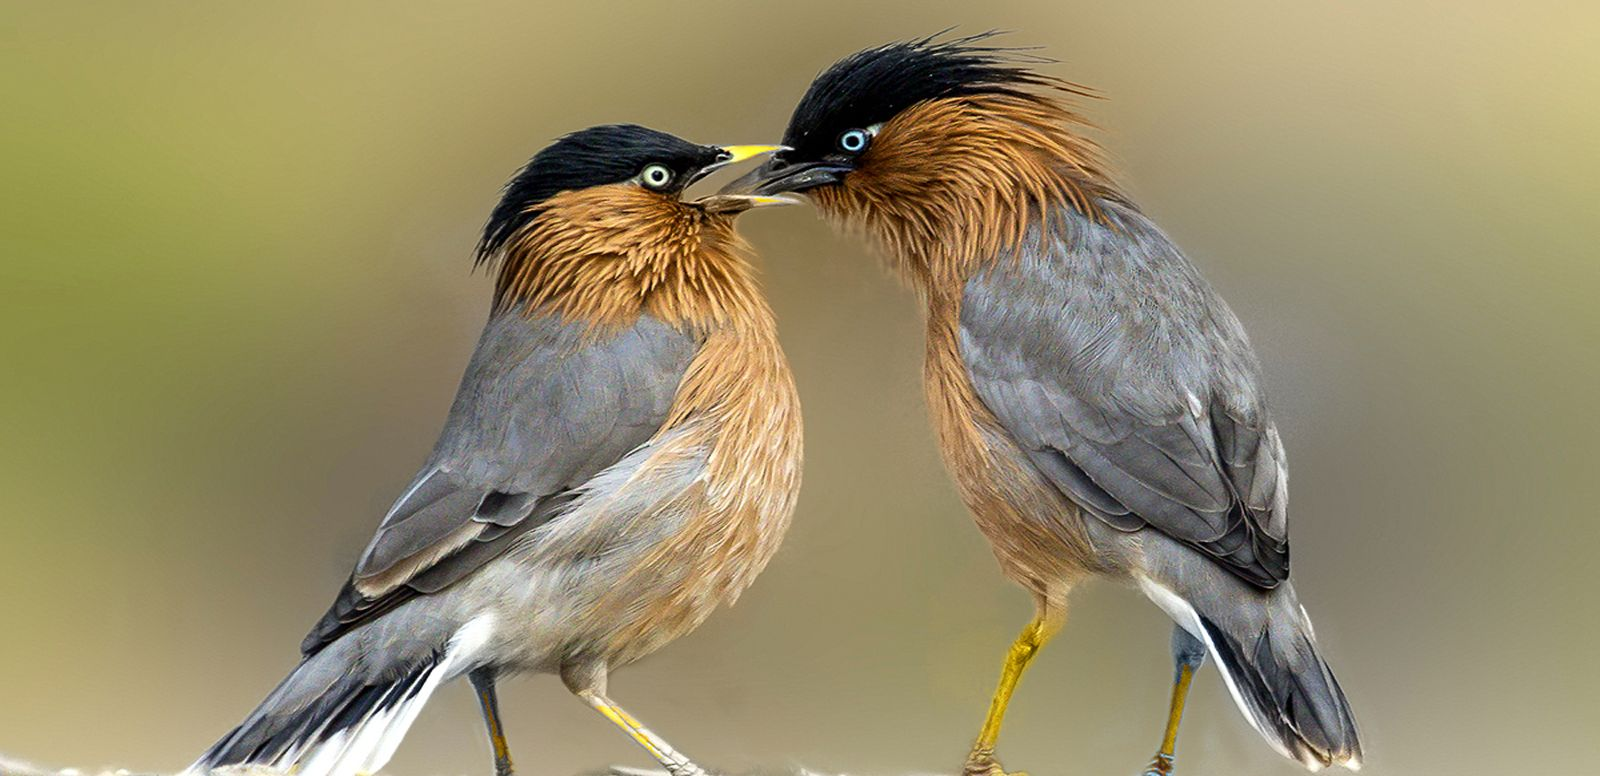 the site is to share free bird animal nature wildlife images